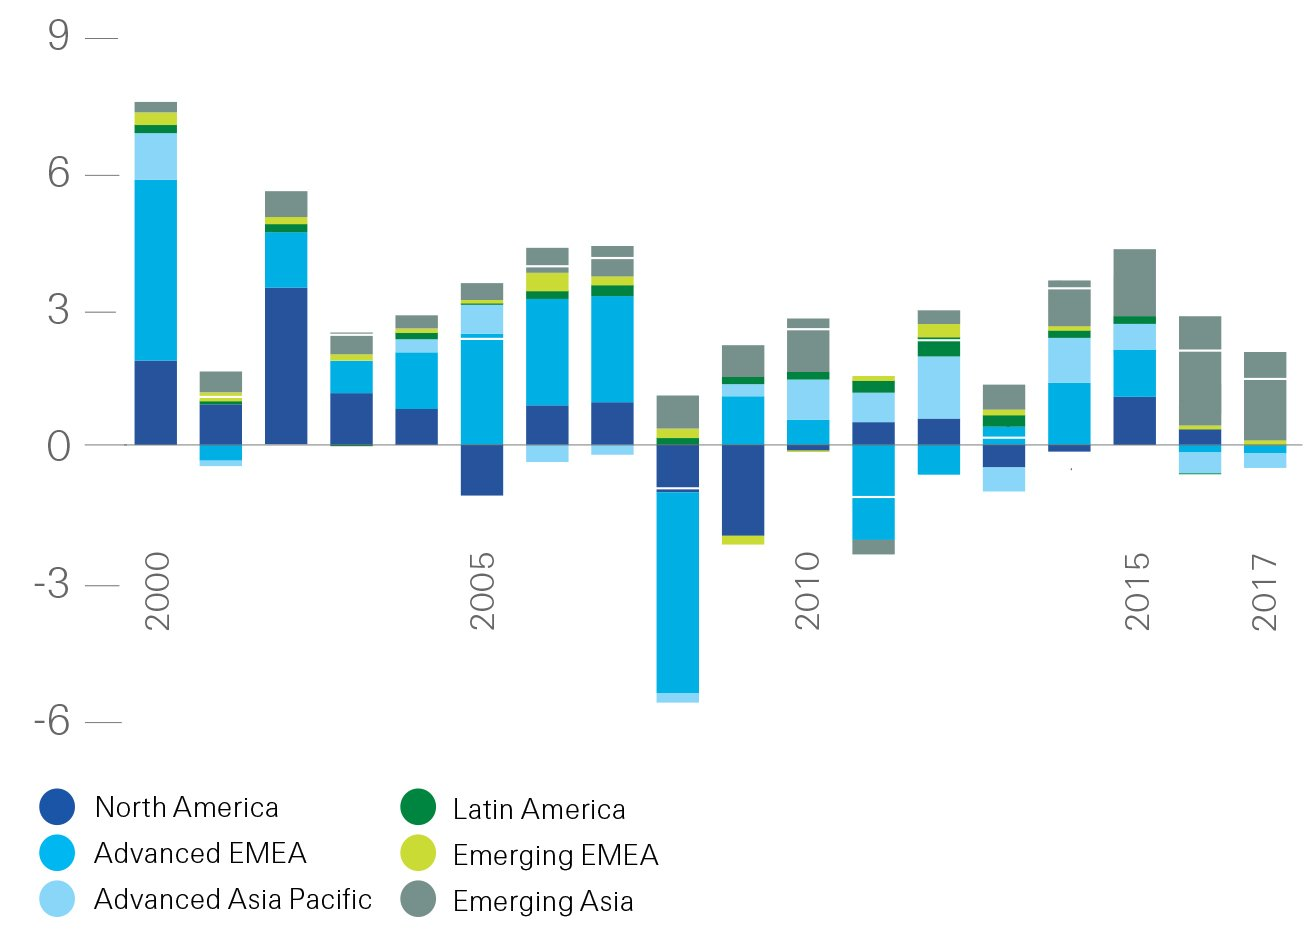 Image from Swiss Re